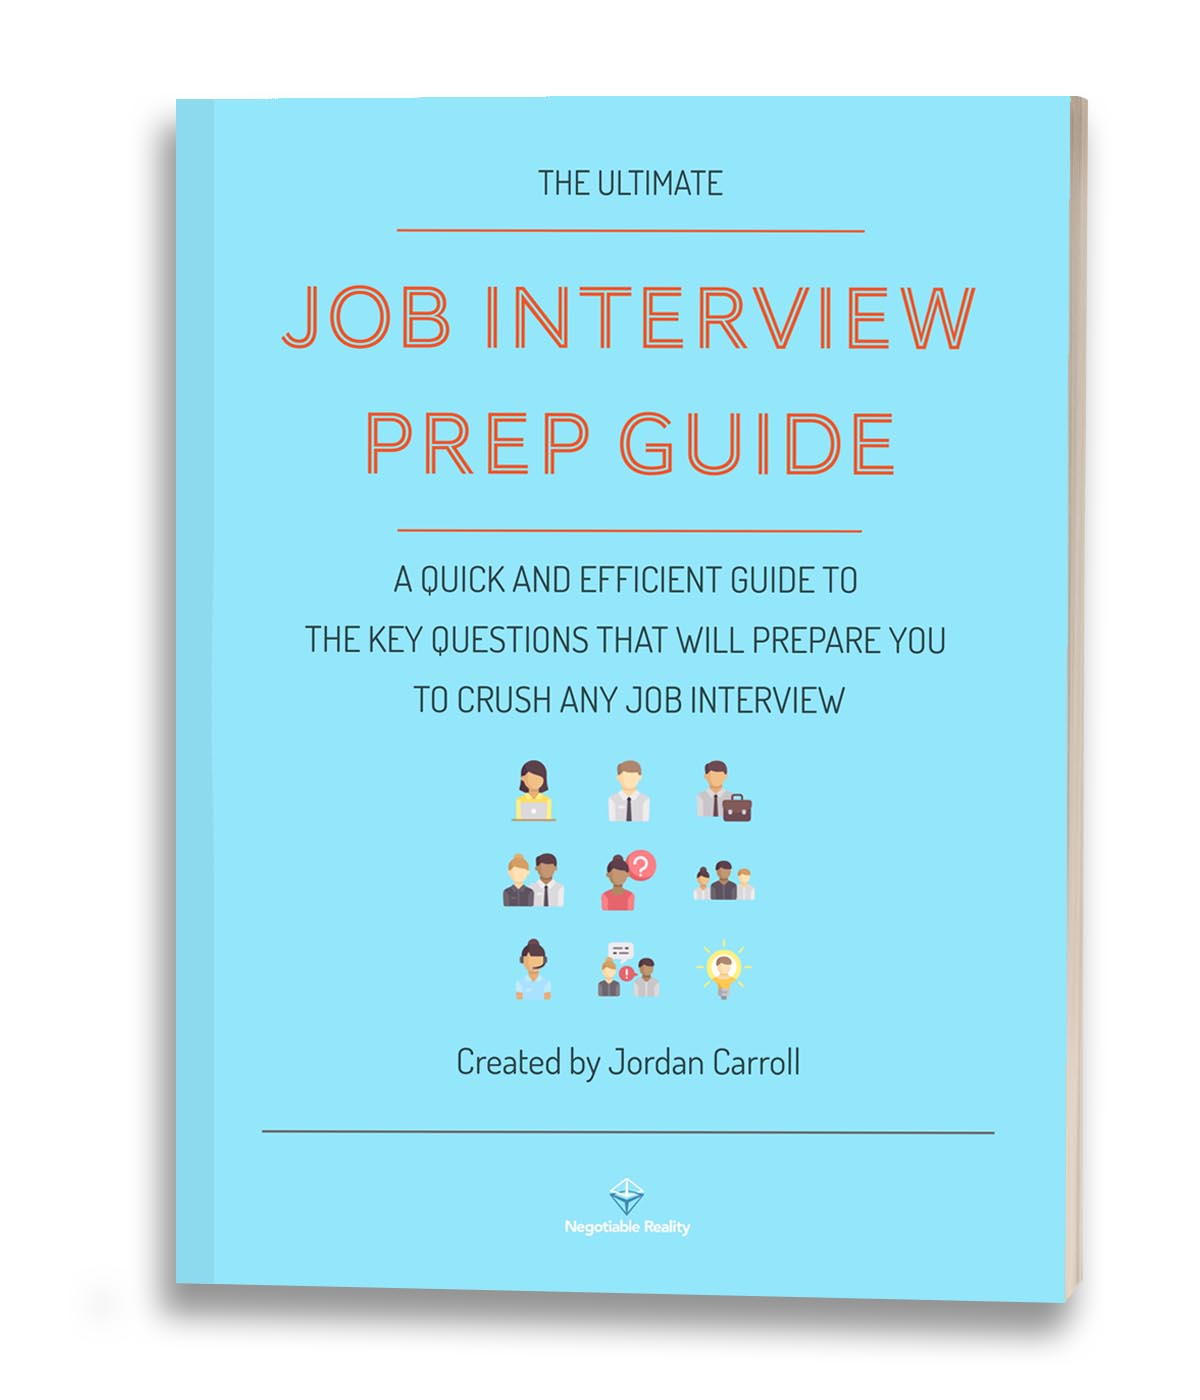 The Ultimate Job Interview Prep Guide Ebook Cover.jpg